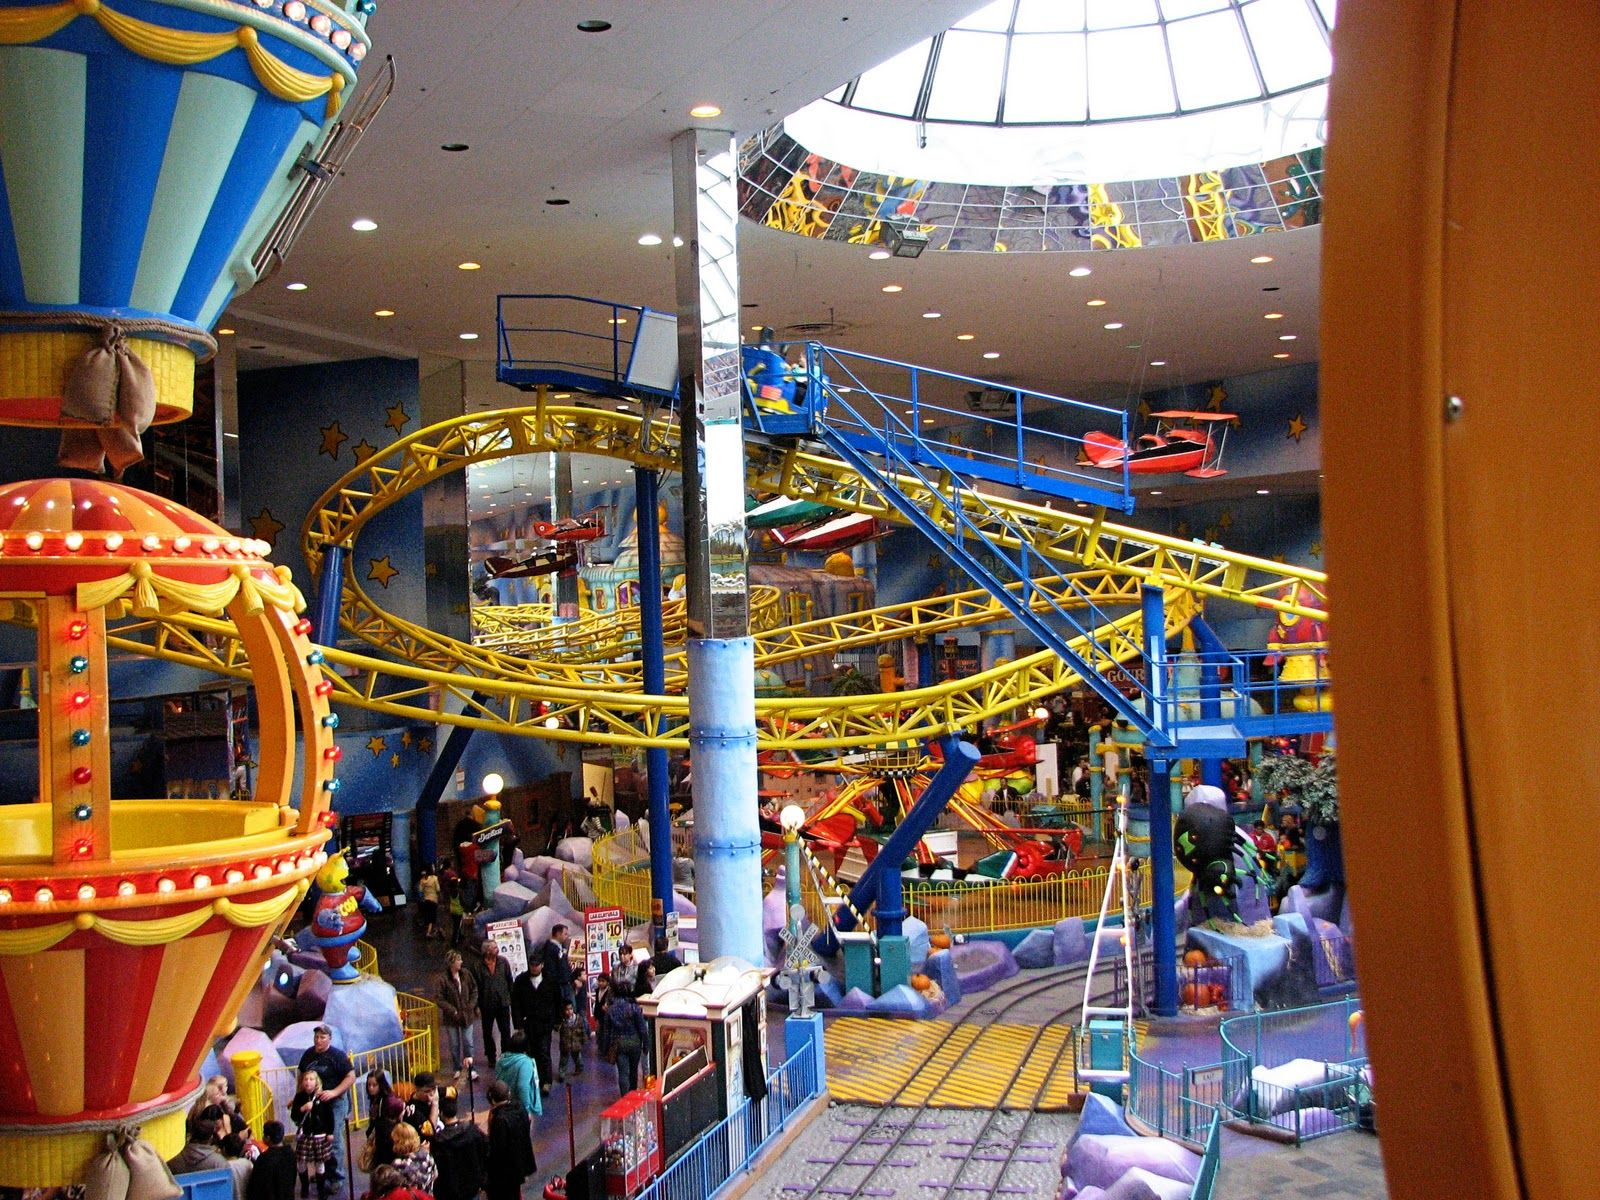 Visited the West Edmonton Mall, the largest indoor mall in